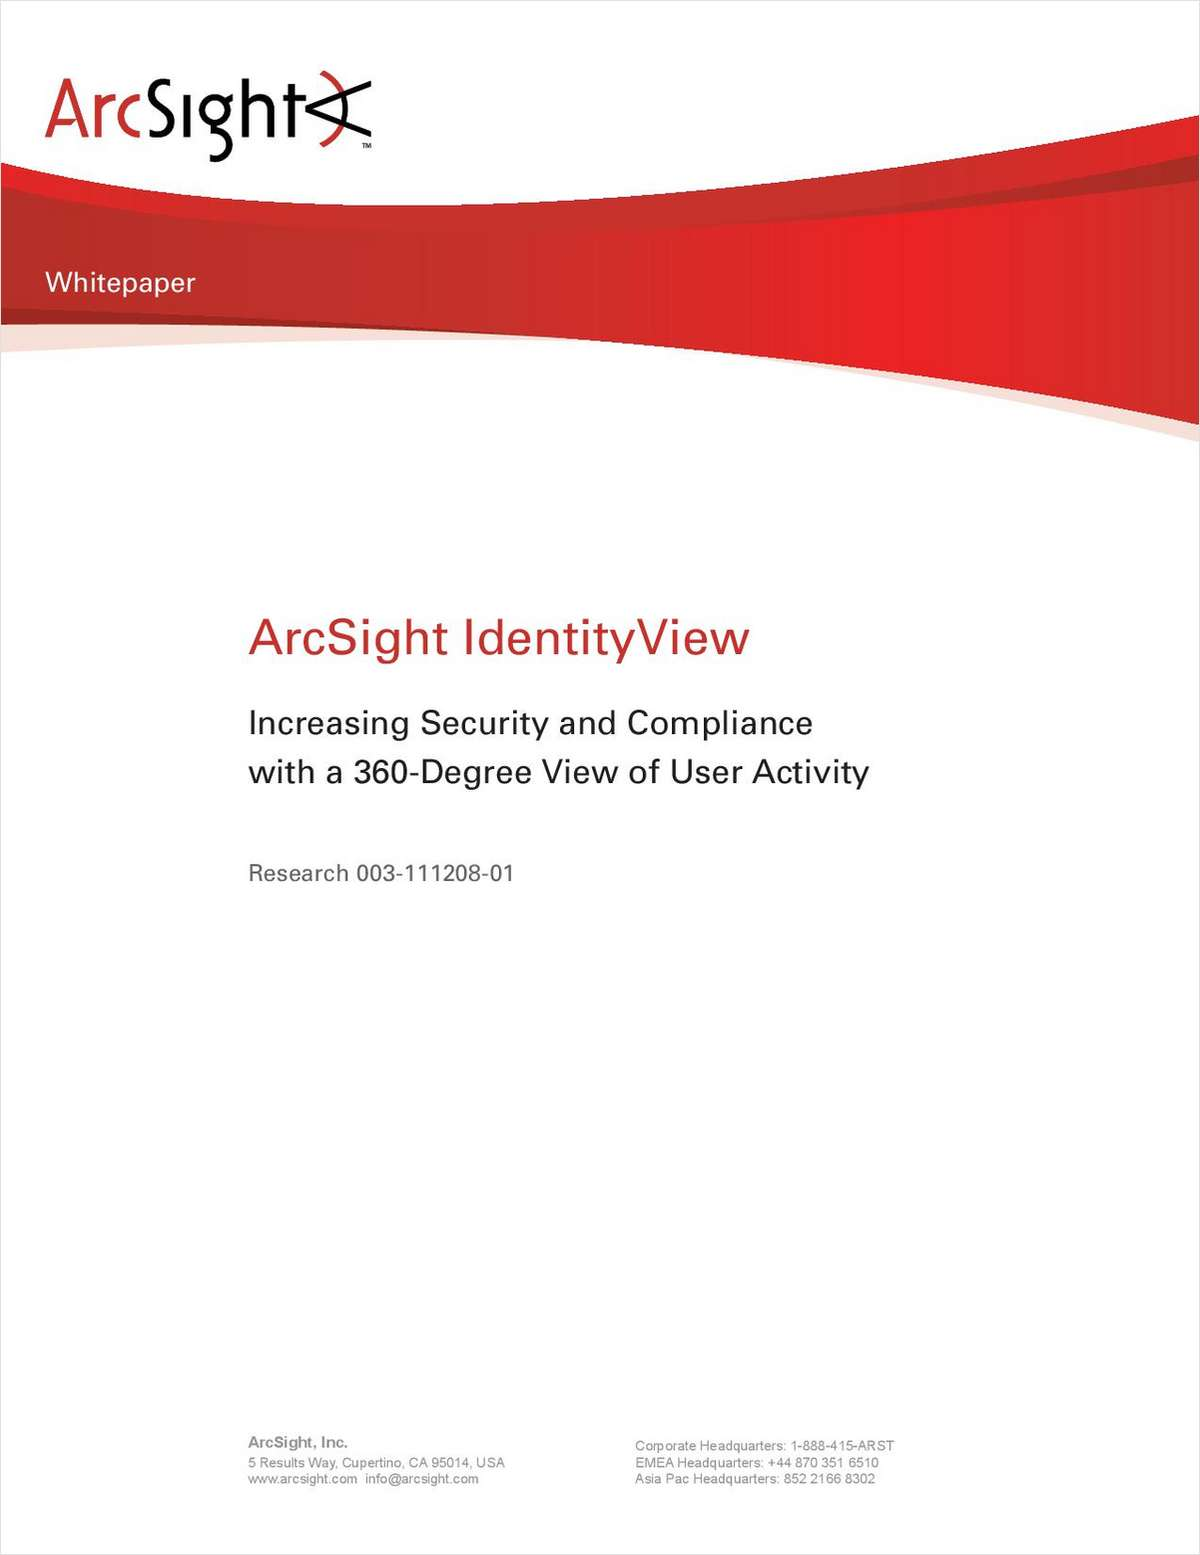 Increasing Security and Compliance with a 360-Degree View of User Activity